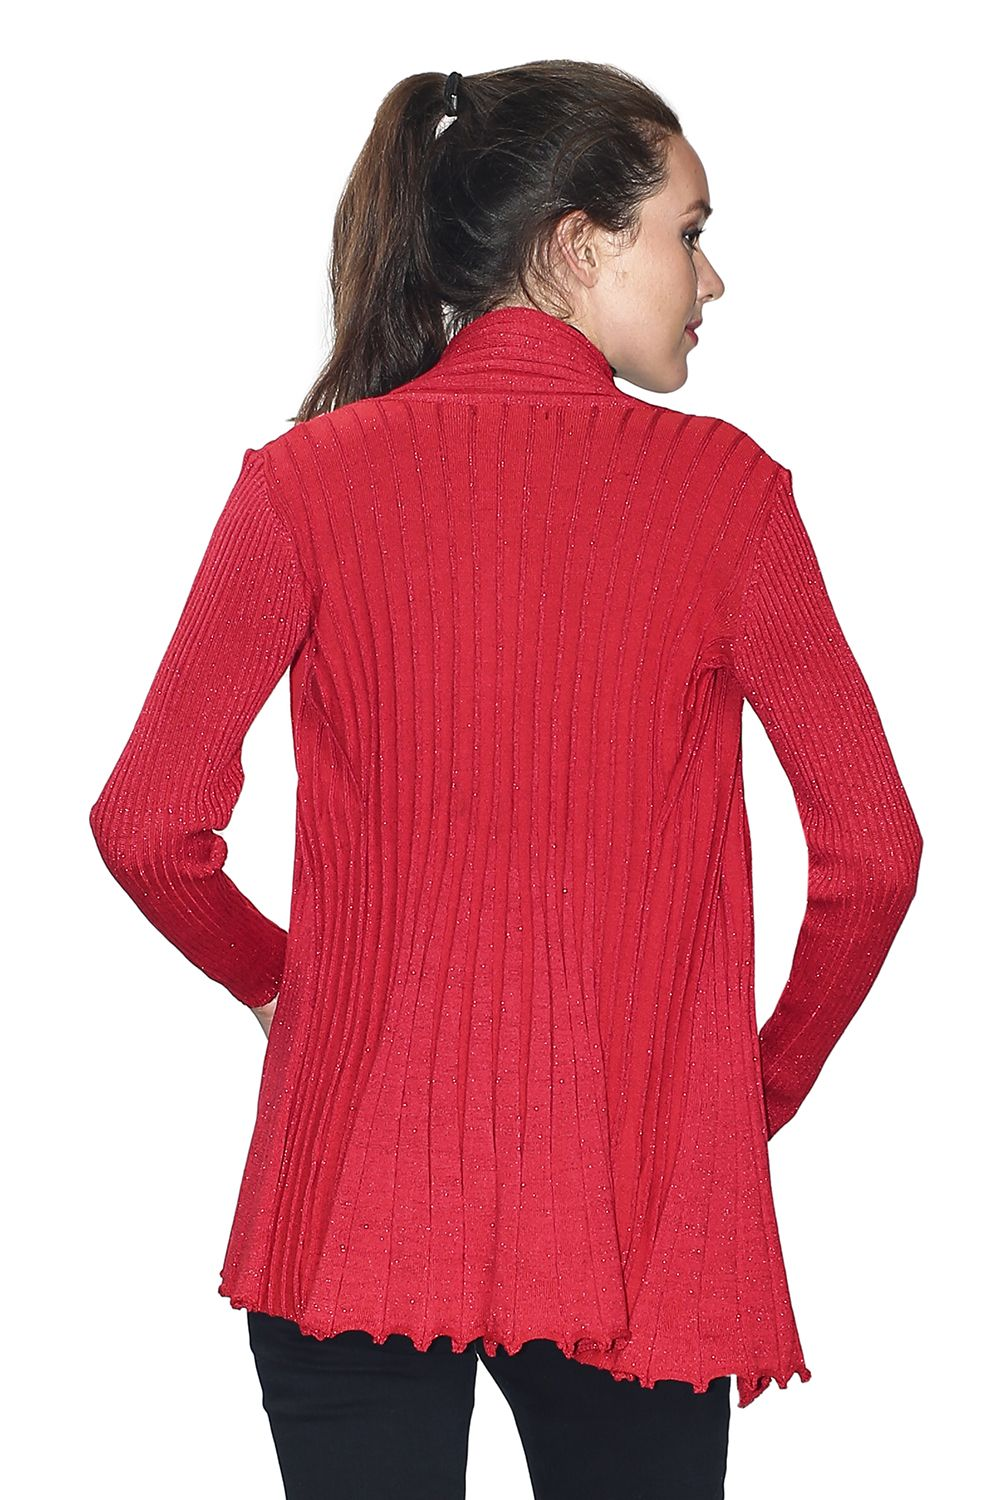 Assuili Long Sleeve Textured Mesh/Lurex Open Cardigan (Classic Fit) in Red